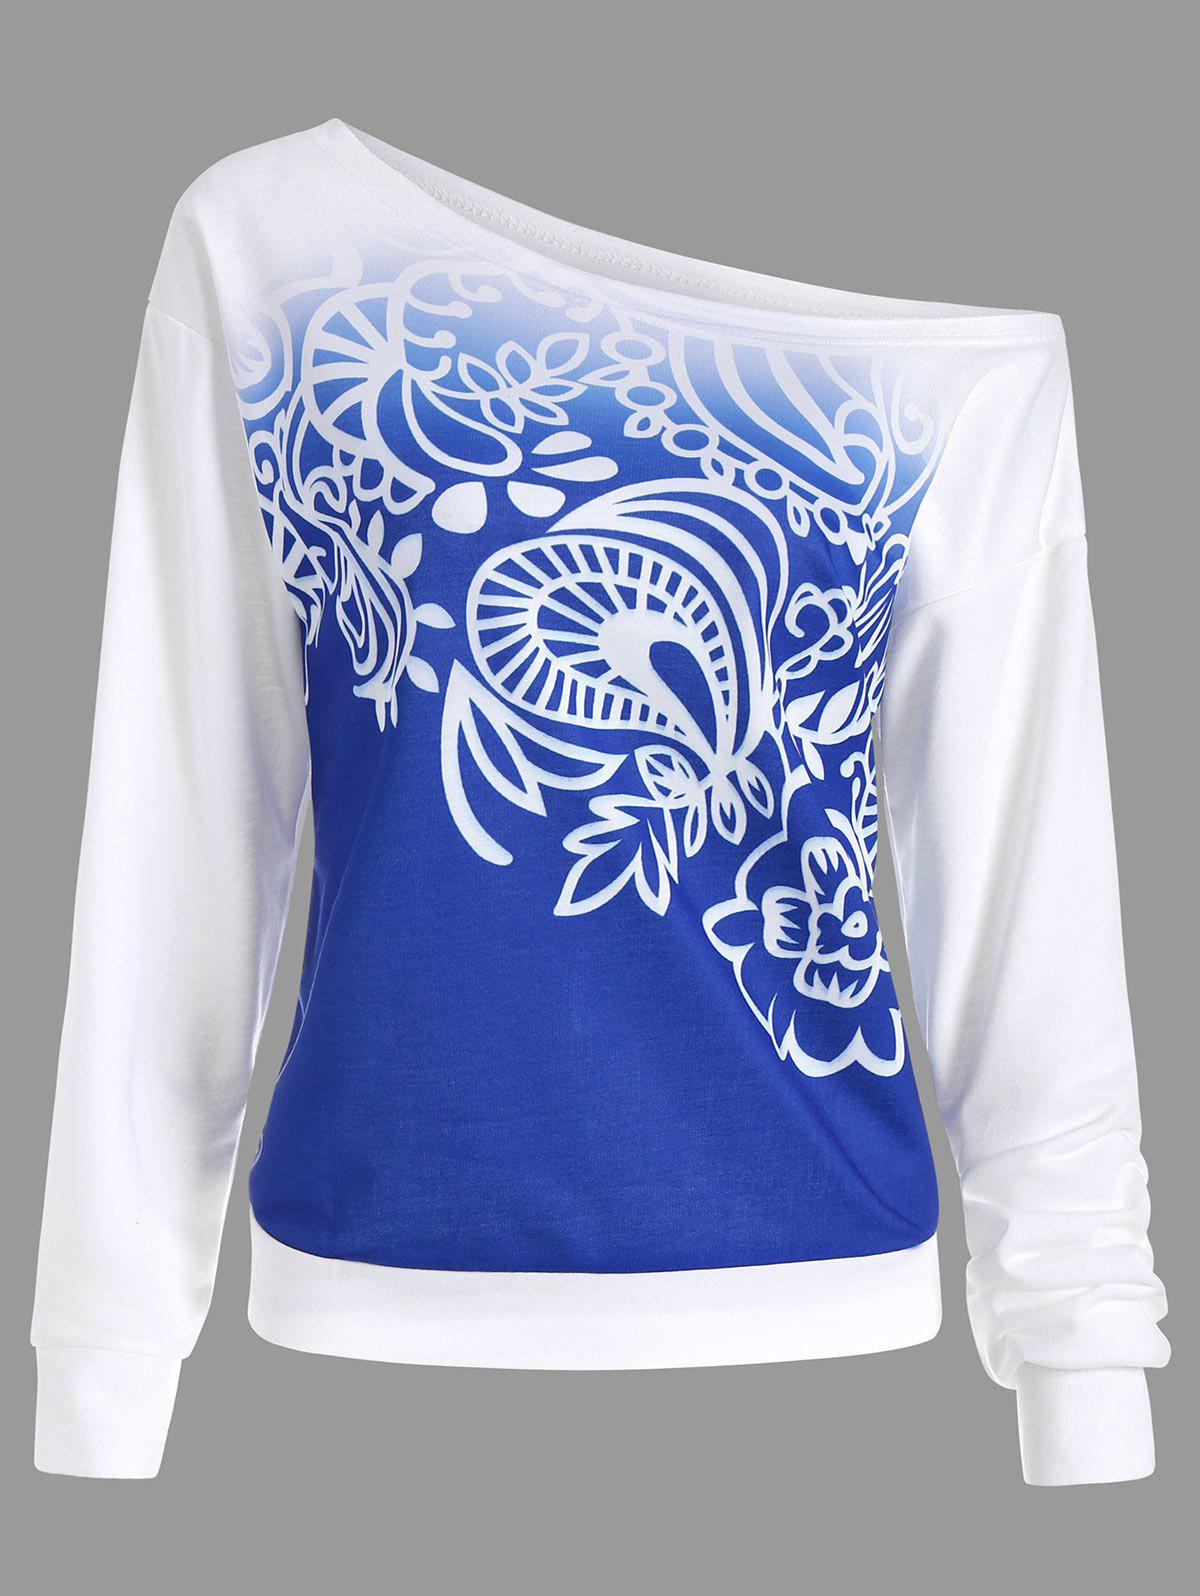 Printed Ombre Long Sleeve SweatshirtWOMEN<br><br>Size: S; Color: BLUE; Material: Polyester; Shirt Length: Regular; Sleeve Length: Full; Style: Fashion; Pattern Style: Print; Season: Fall,Winter; Weight: 0.4500kg; Package Contents: 1 x Sweatshirt;